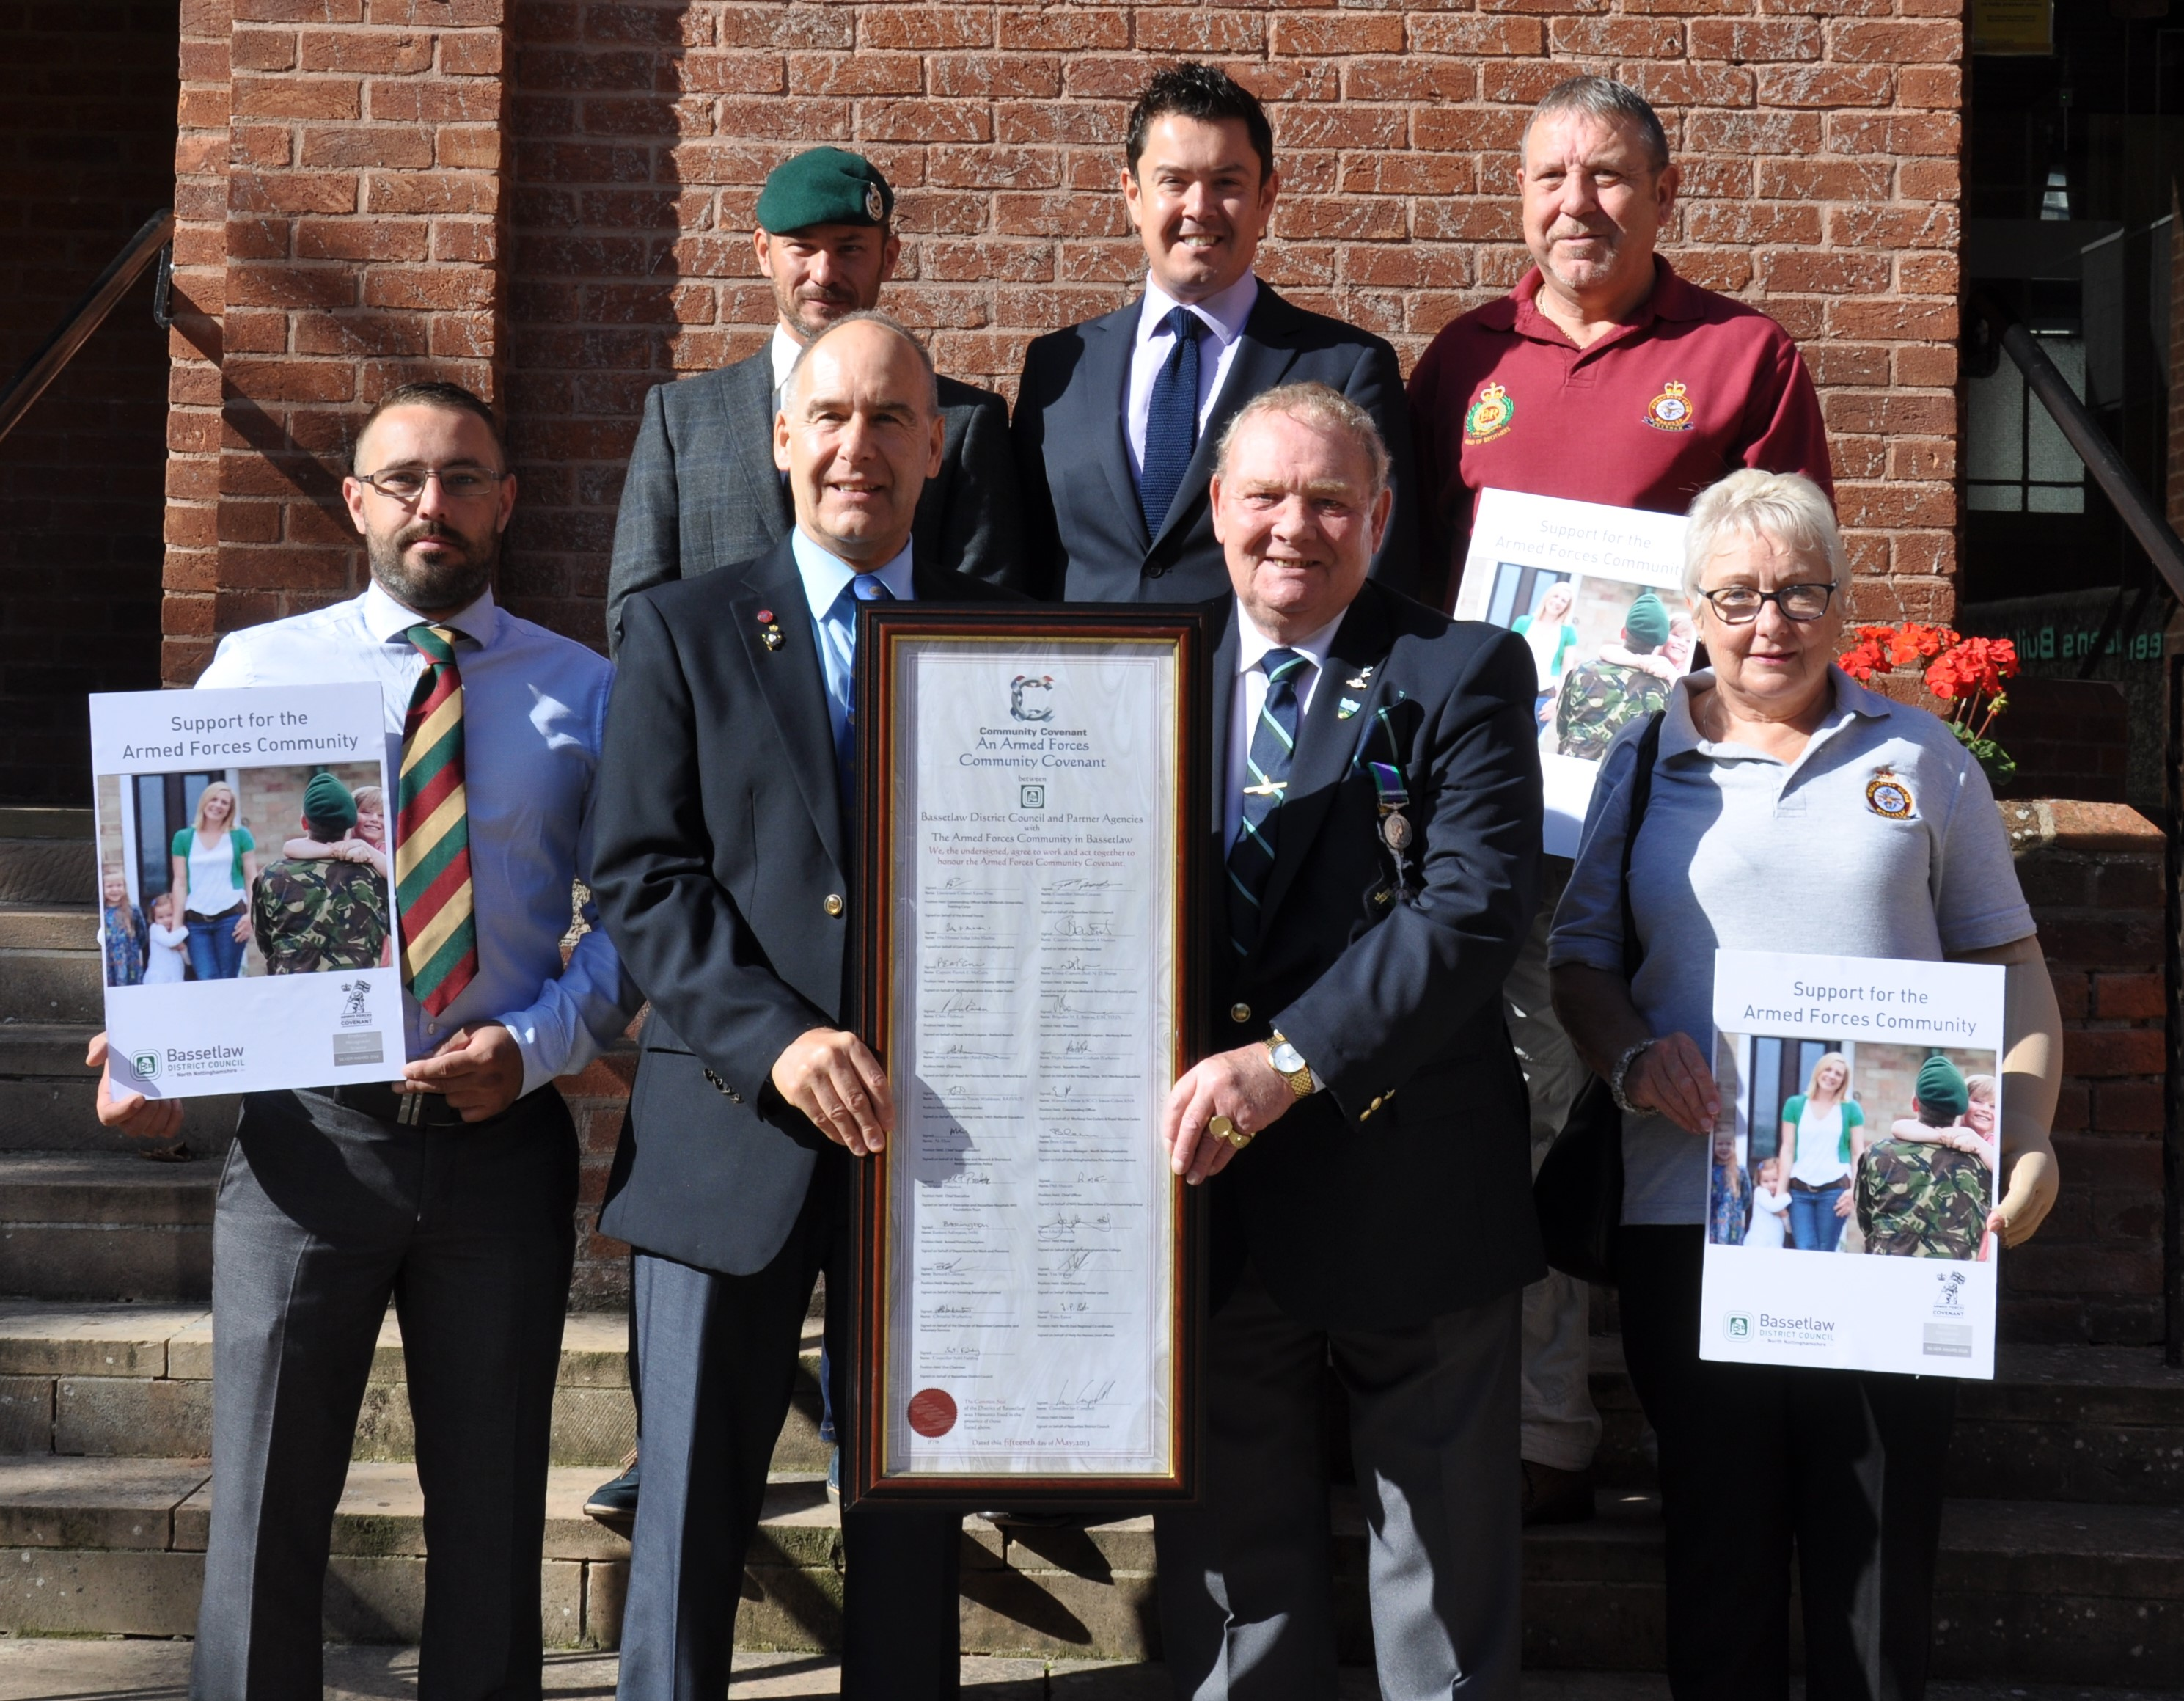 Council launches new publication to support Armed Forces Community